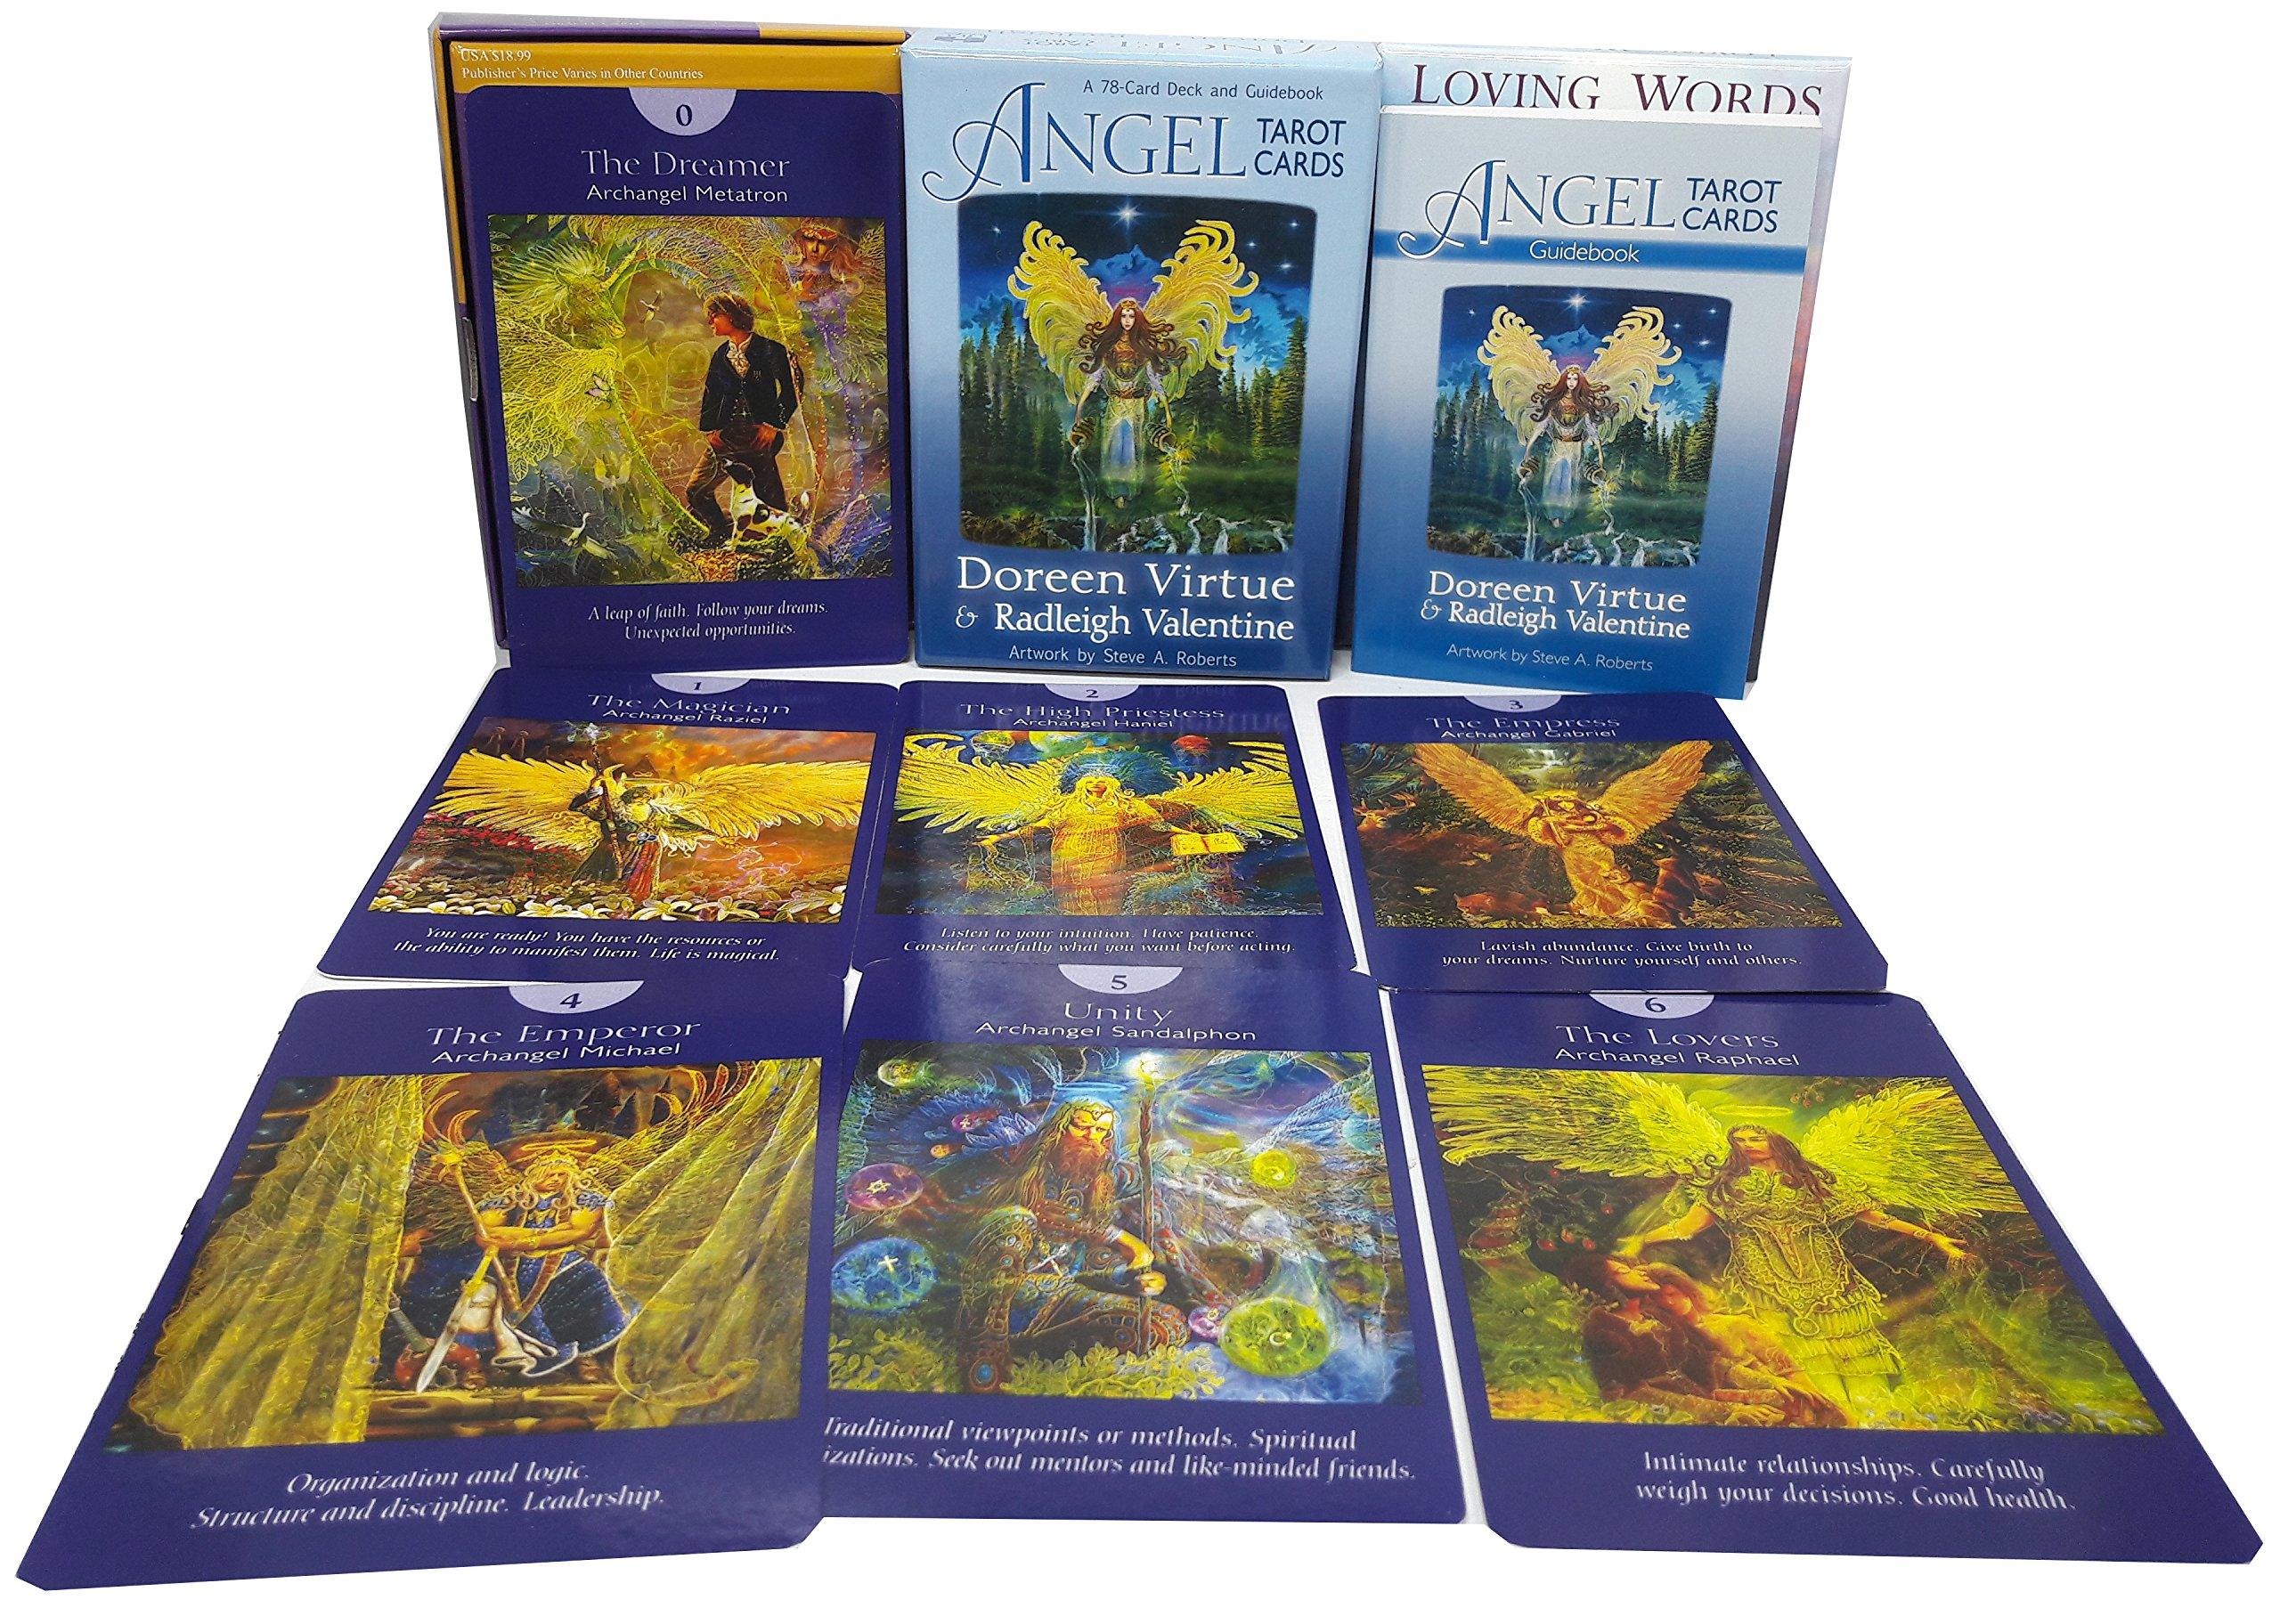 Angel tarot cards doreen virtue a 78 card deck and guidebook pack set:  Amazon.co.uk: 9789123691371: Books